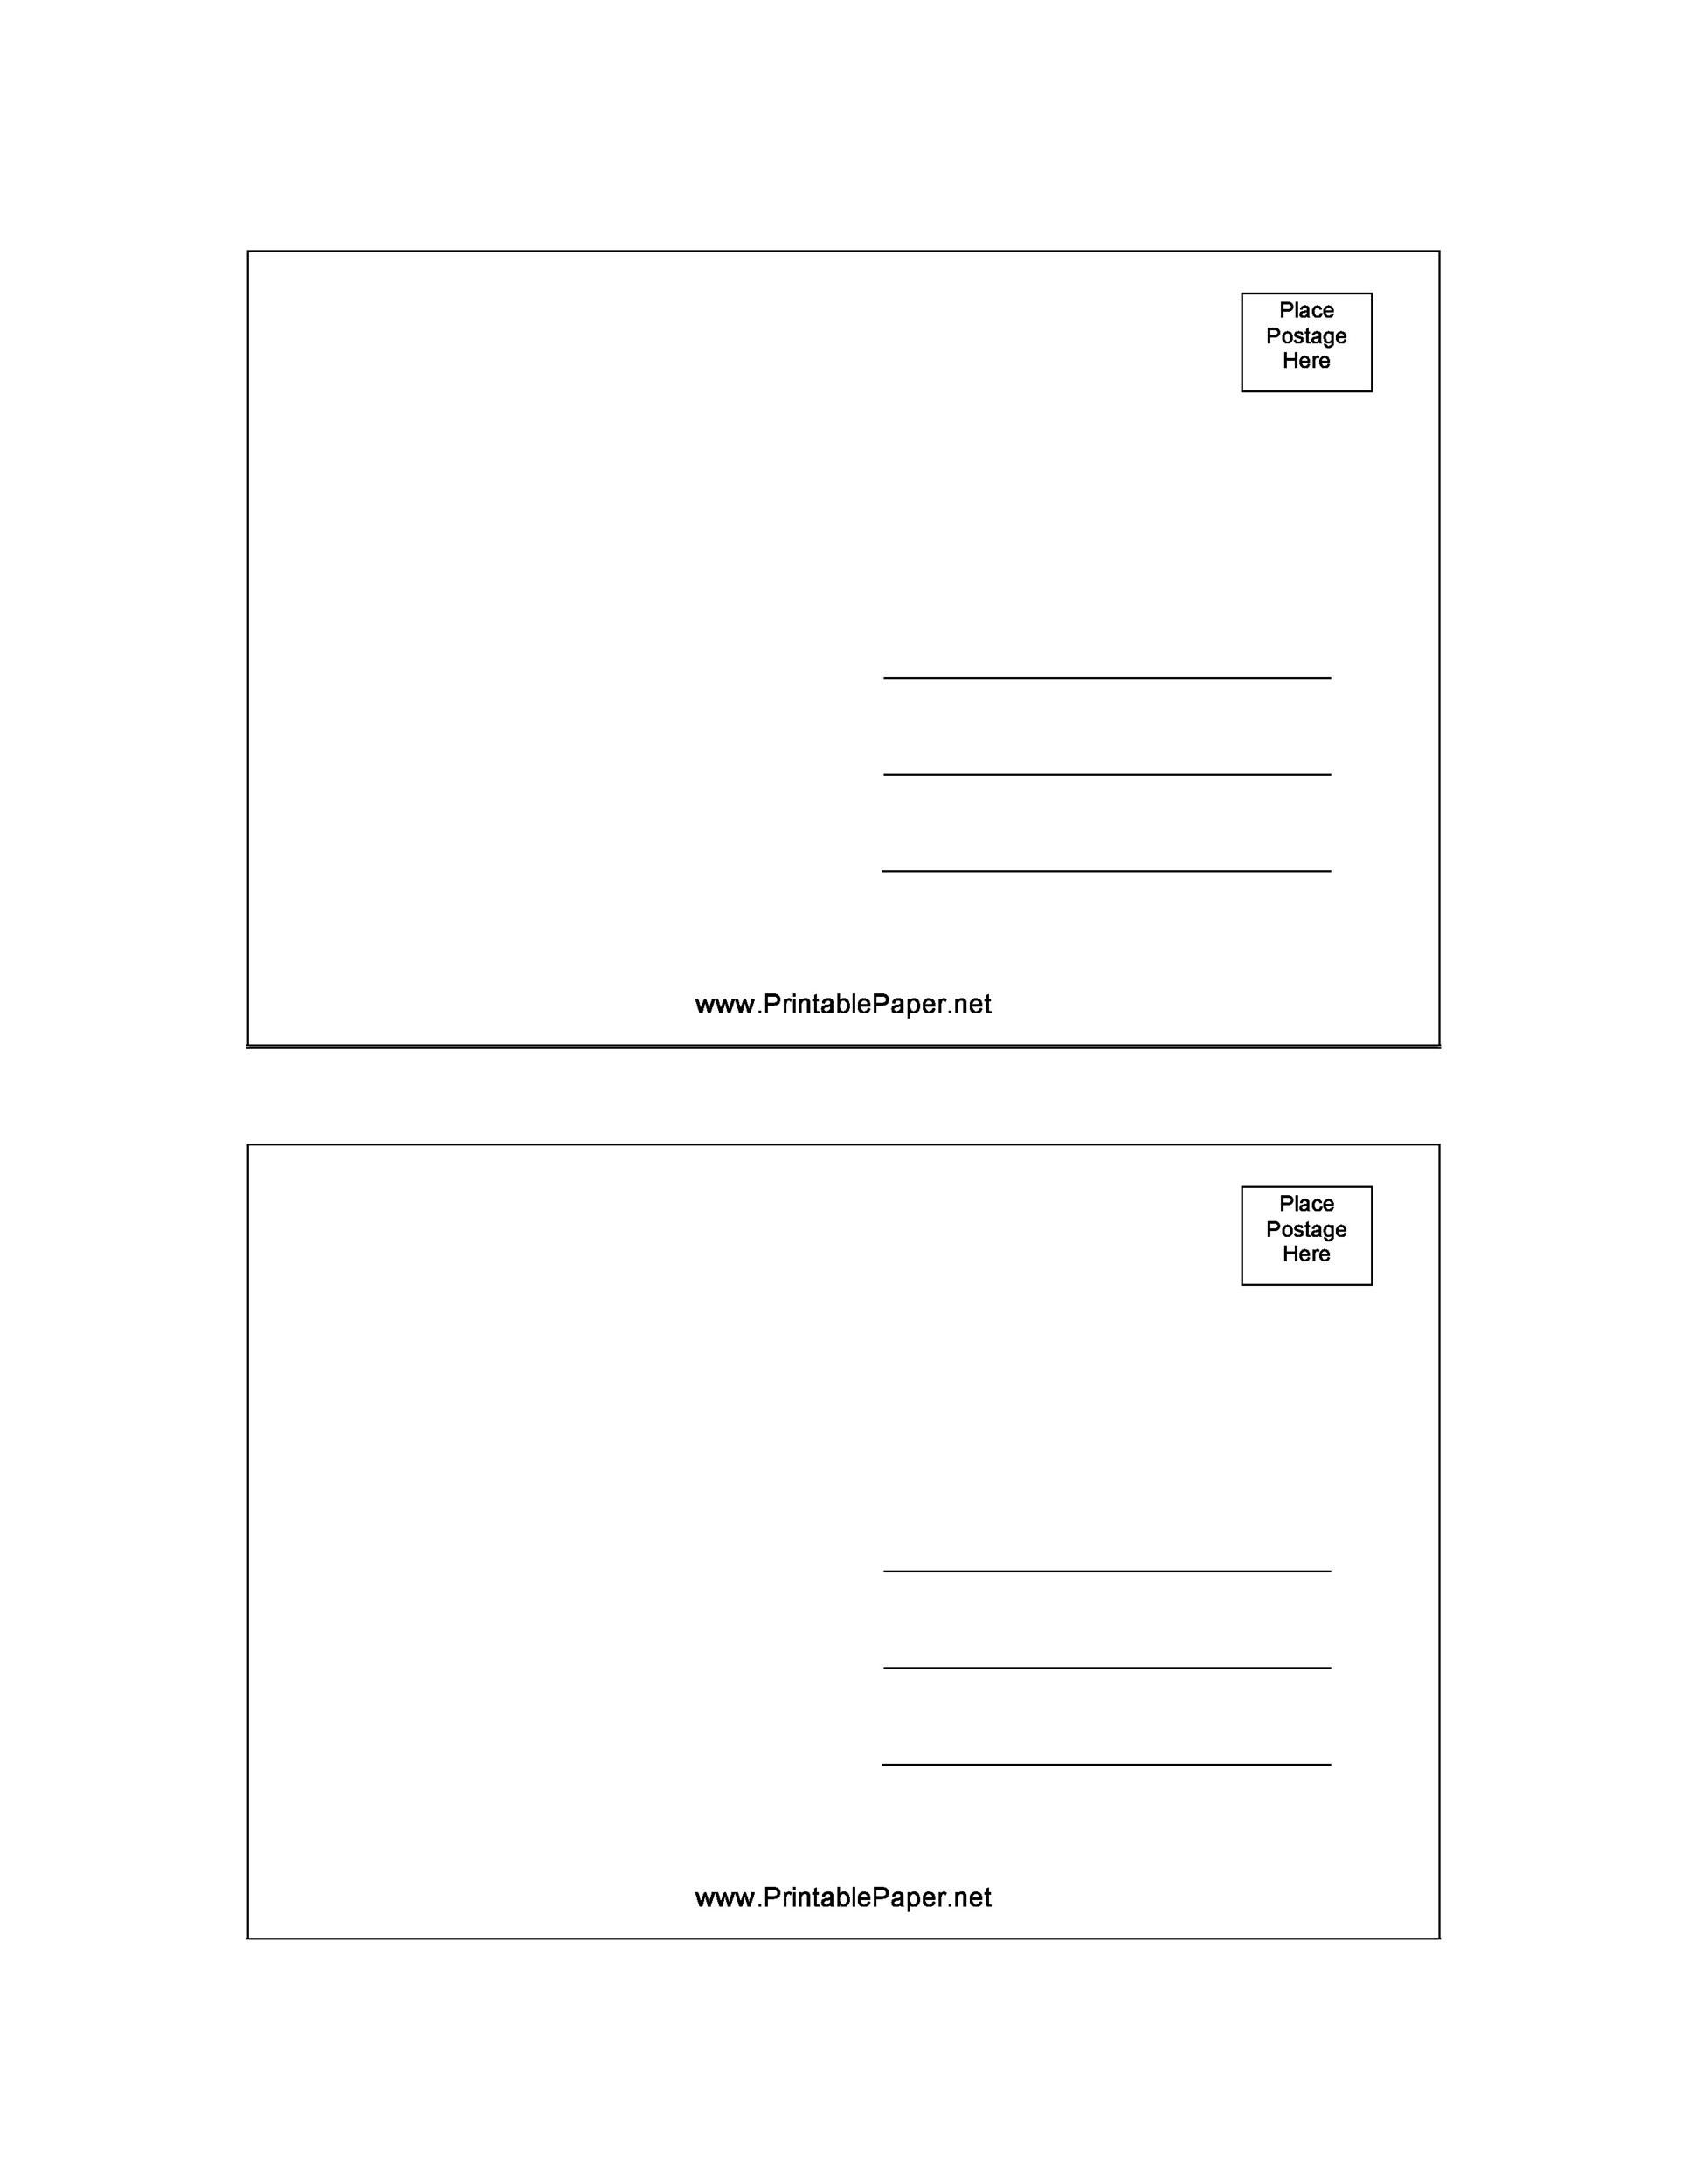 007 Best Postcard Template Download Microsoft Word High Definition Full